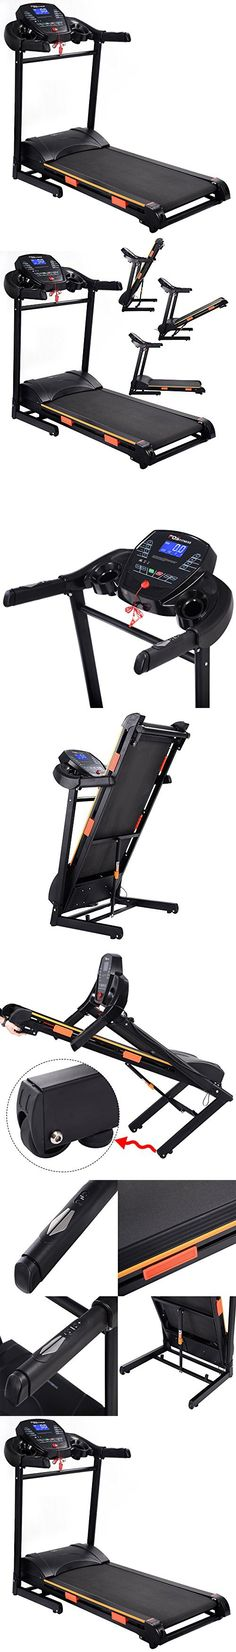 Gracelvoe Portable Folding Electric Motorized Commercial-Grade Home Treadmill Running Machine